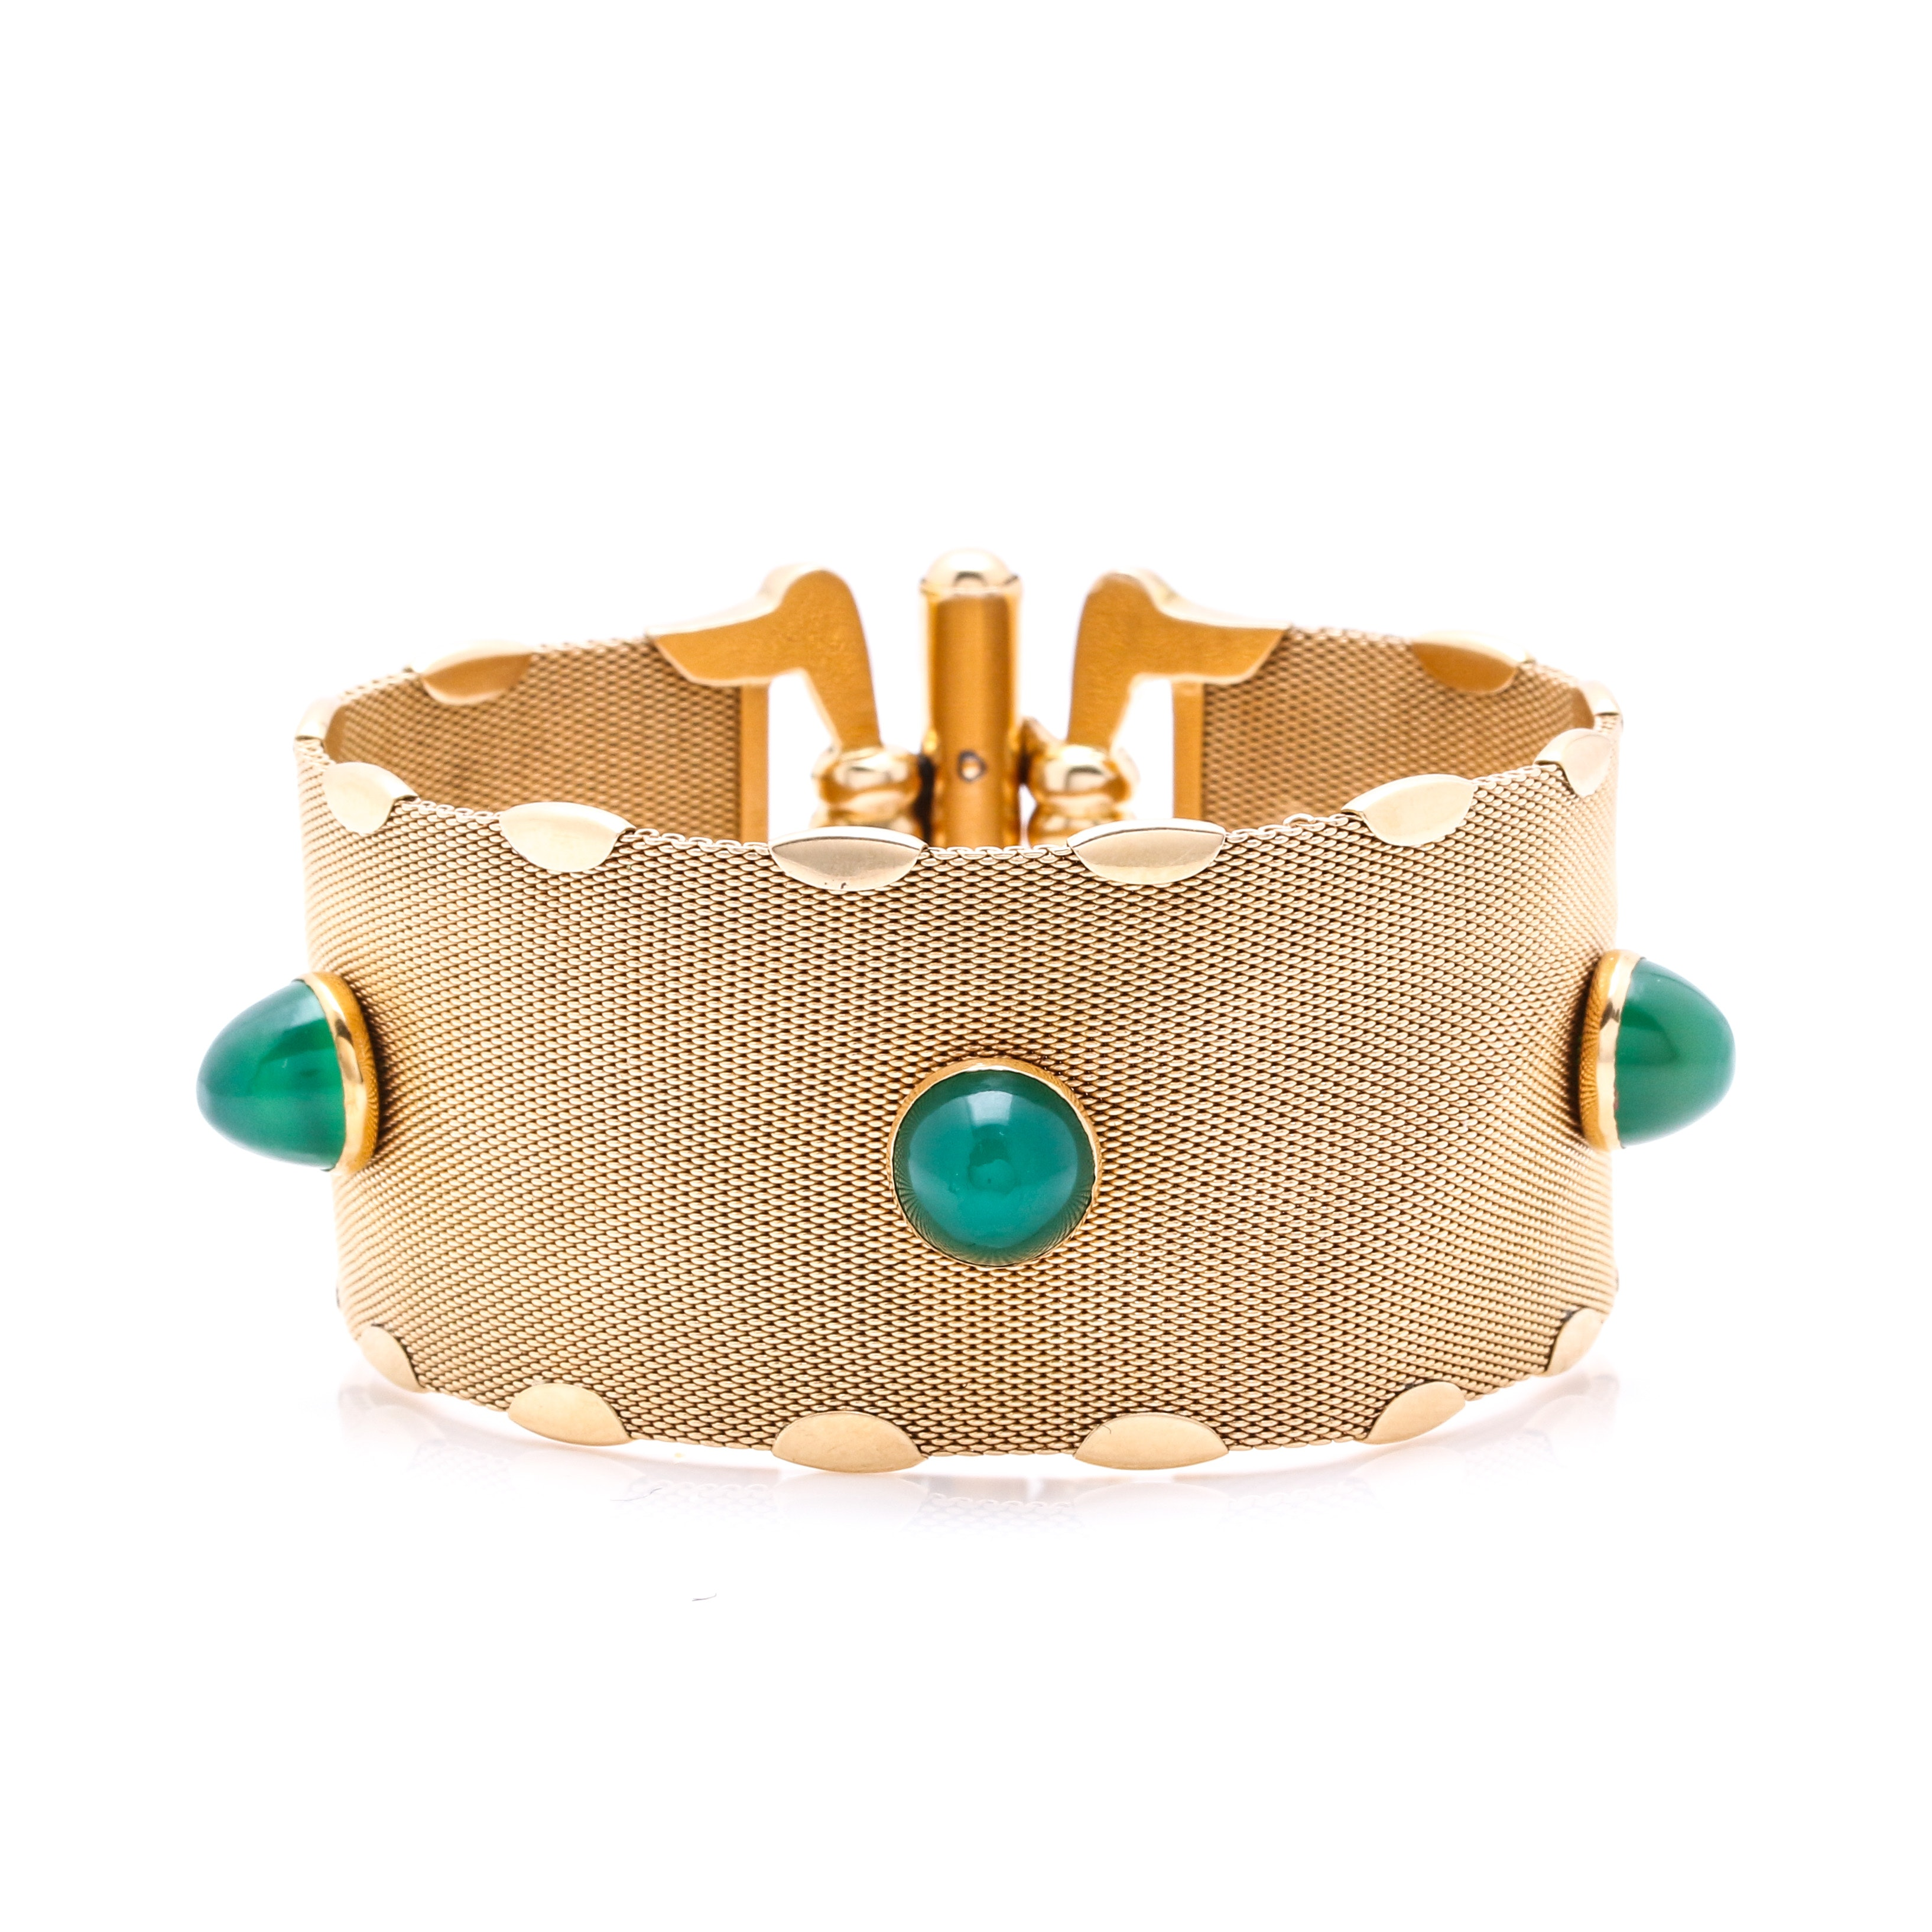 18K Yellow Gold Mesh Bracelet with Dyed Green Chalcedony Stones